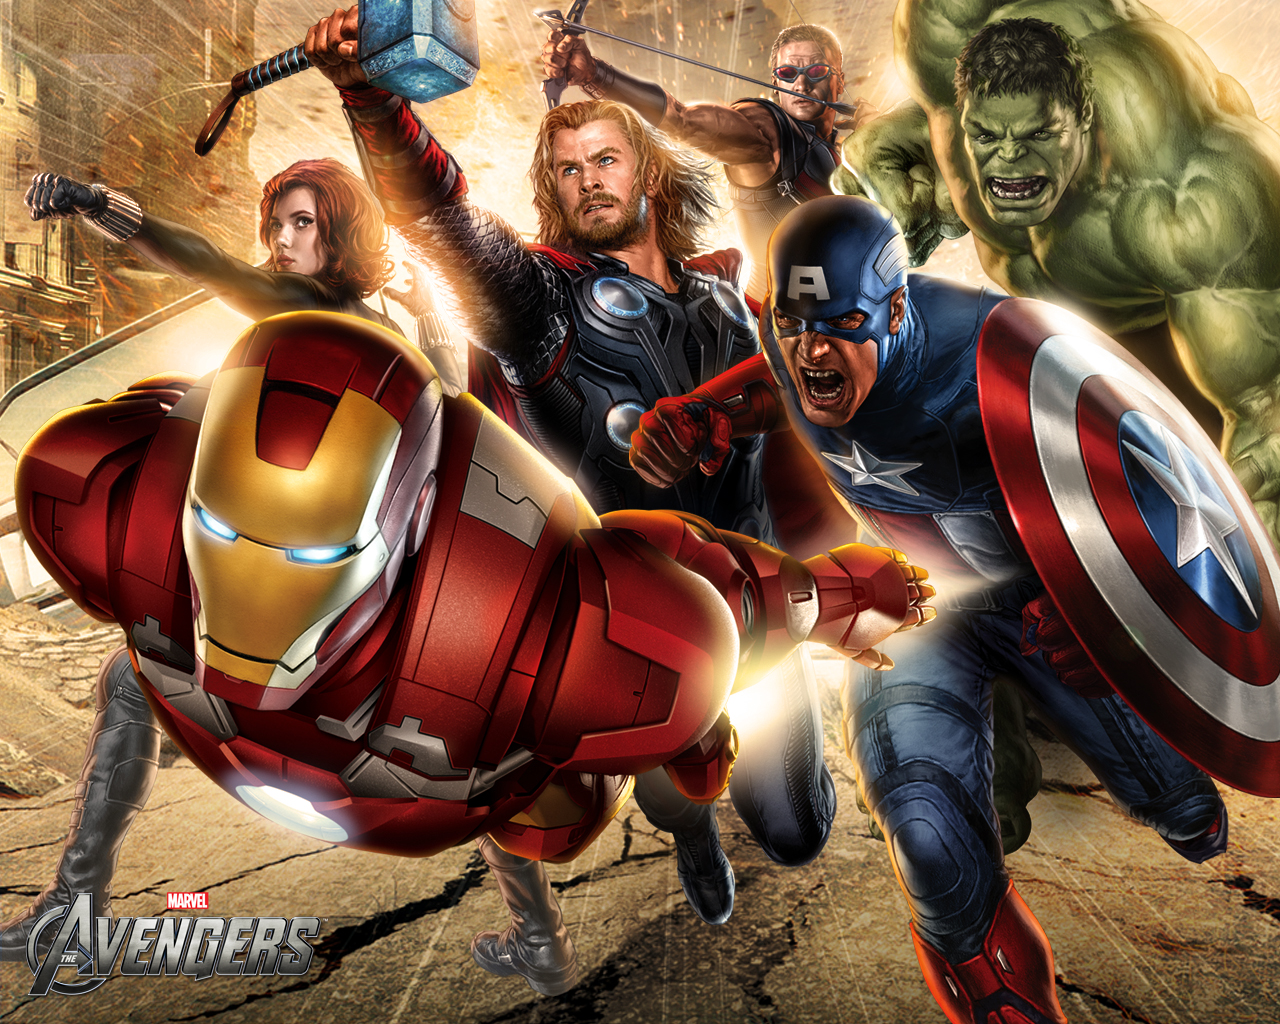 Marvel The Avengers: Best Superhero Movie!!!